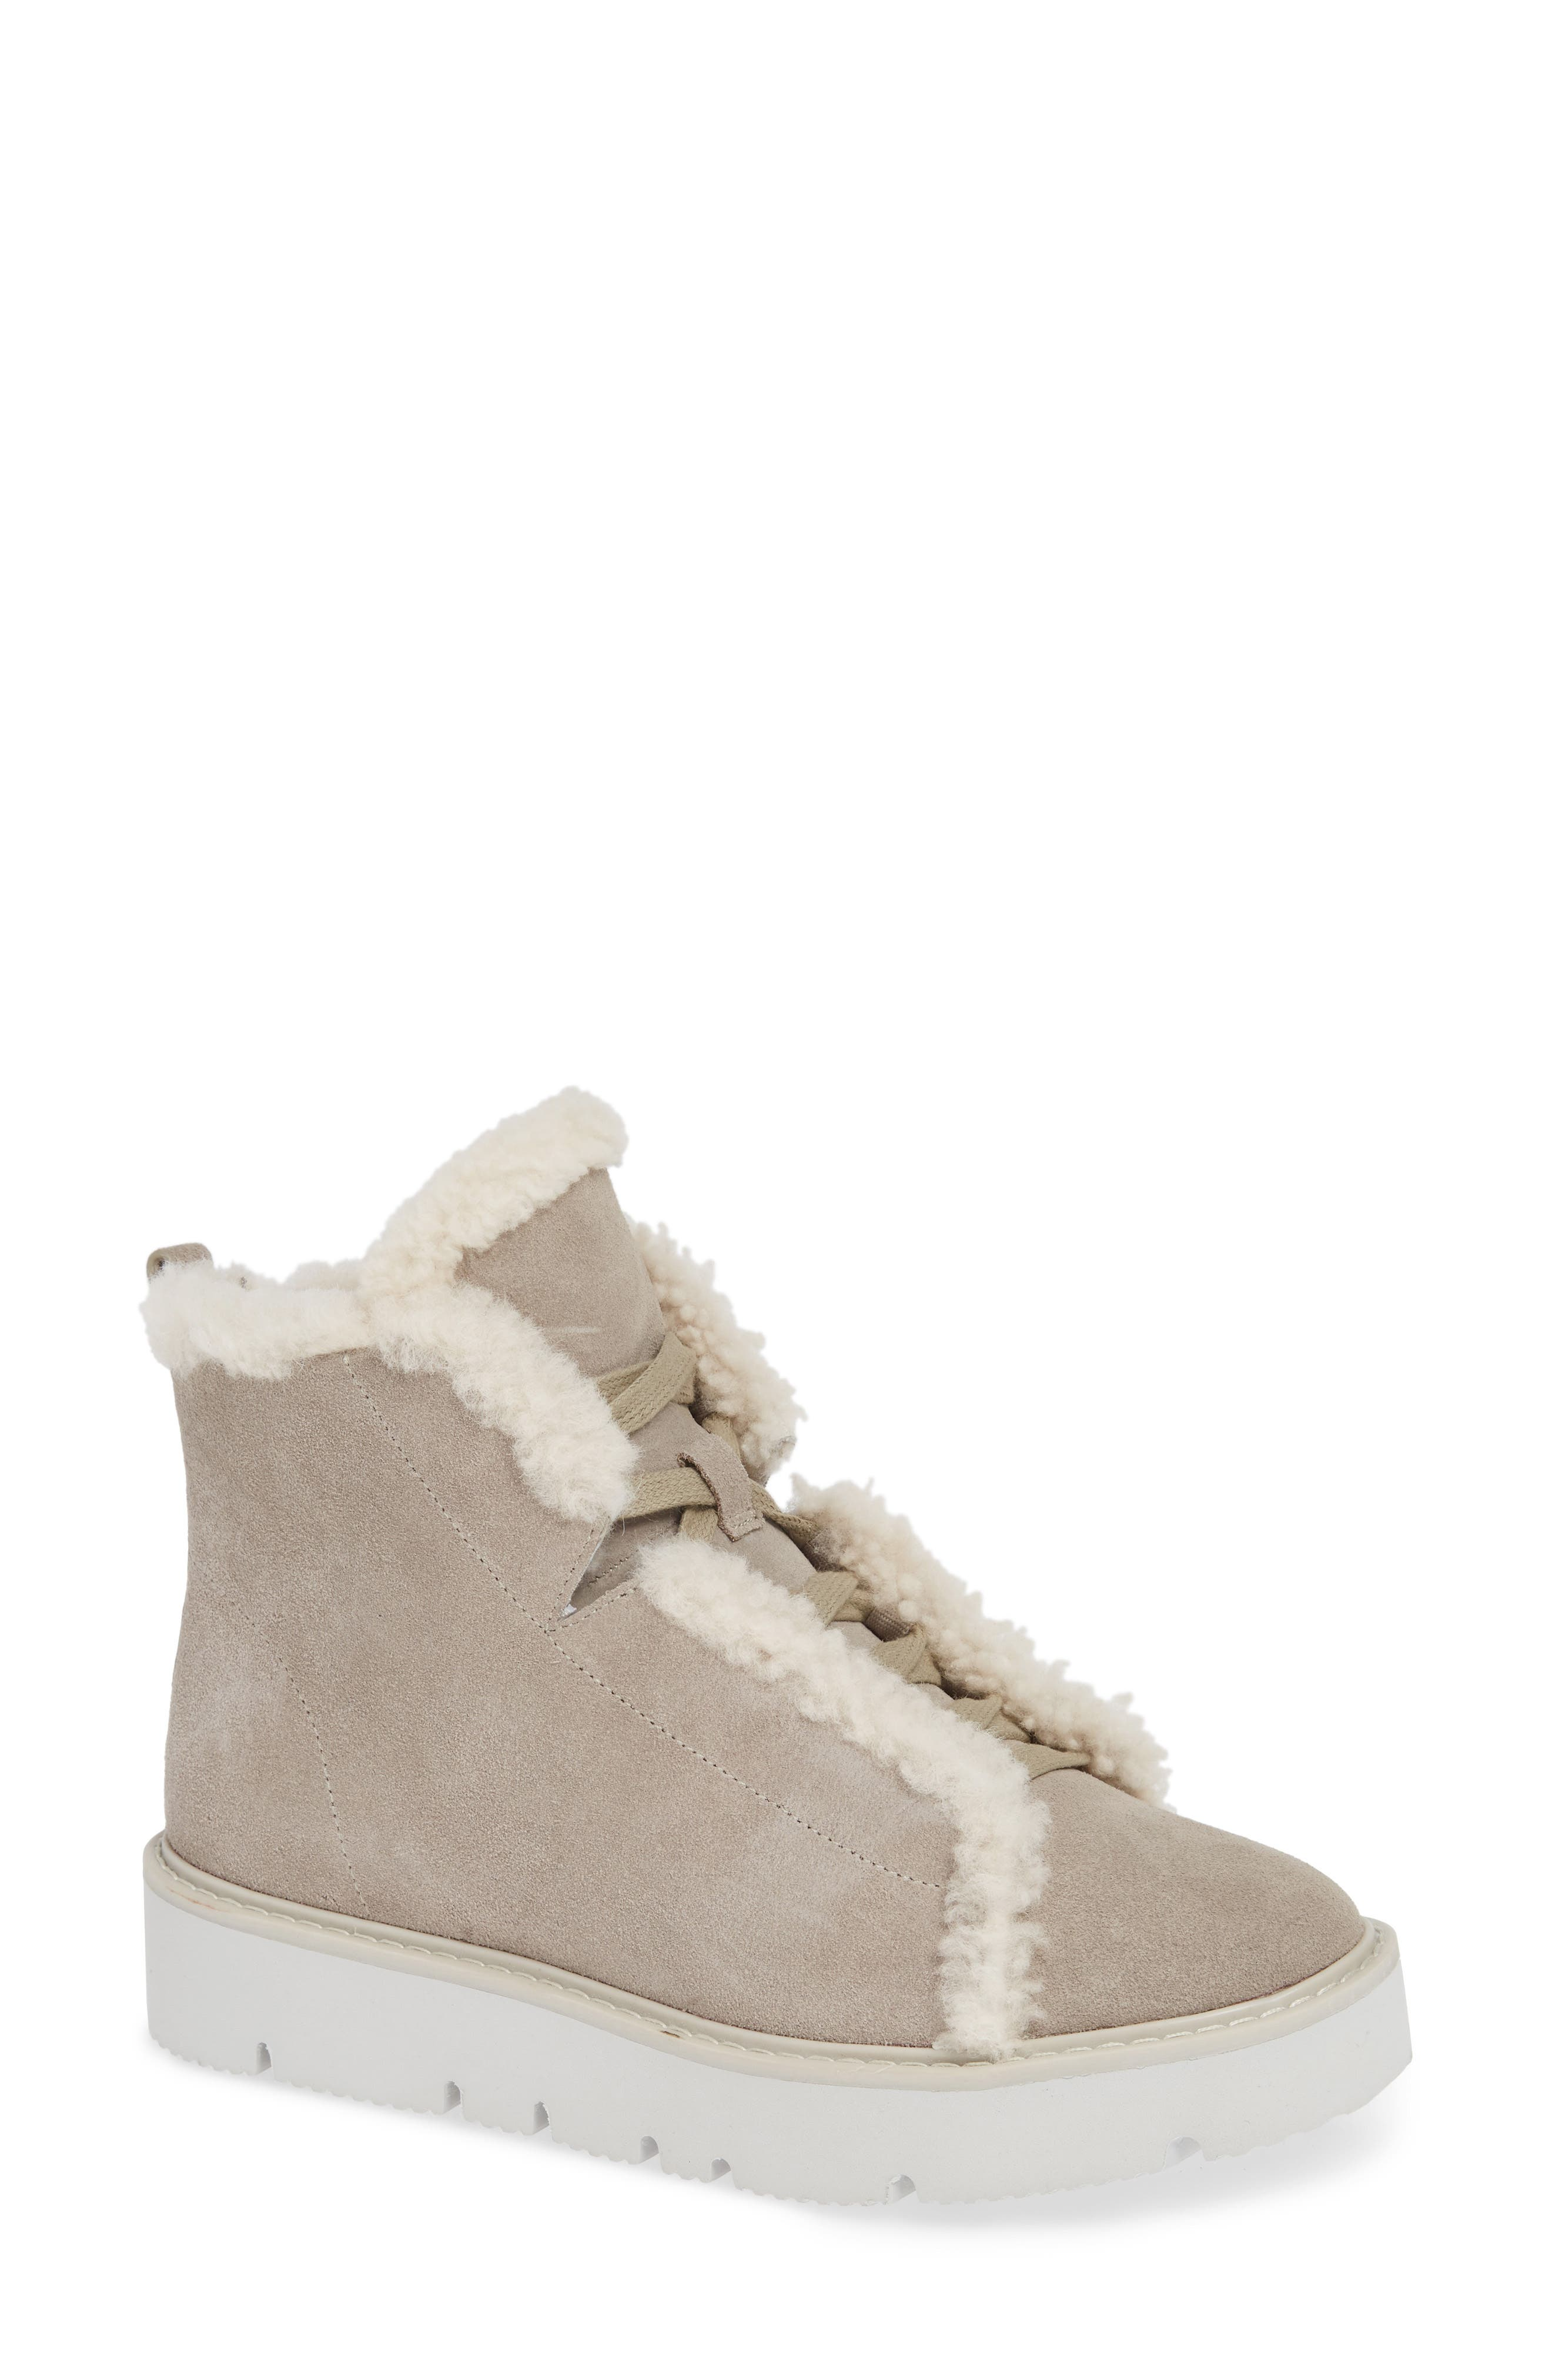 Gentle Souls BY KENNETH COLE TREVOR GENUINE SHEARLING LINED BOOTIE